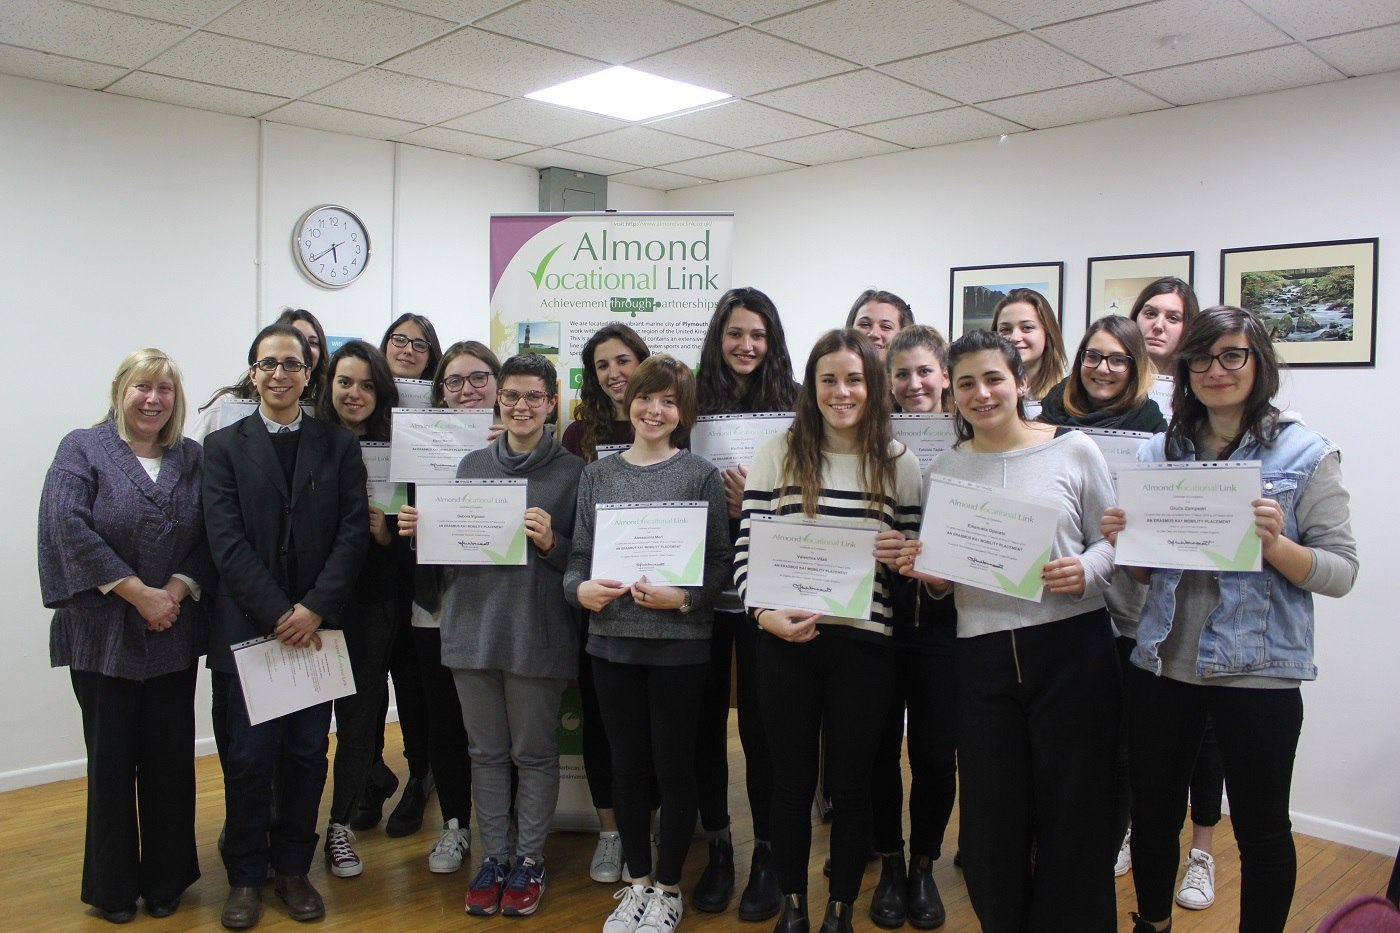 Erasmus Plus Certificate Ceremony Almond Vocational Link Plymouth UK